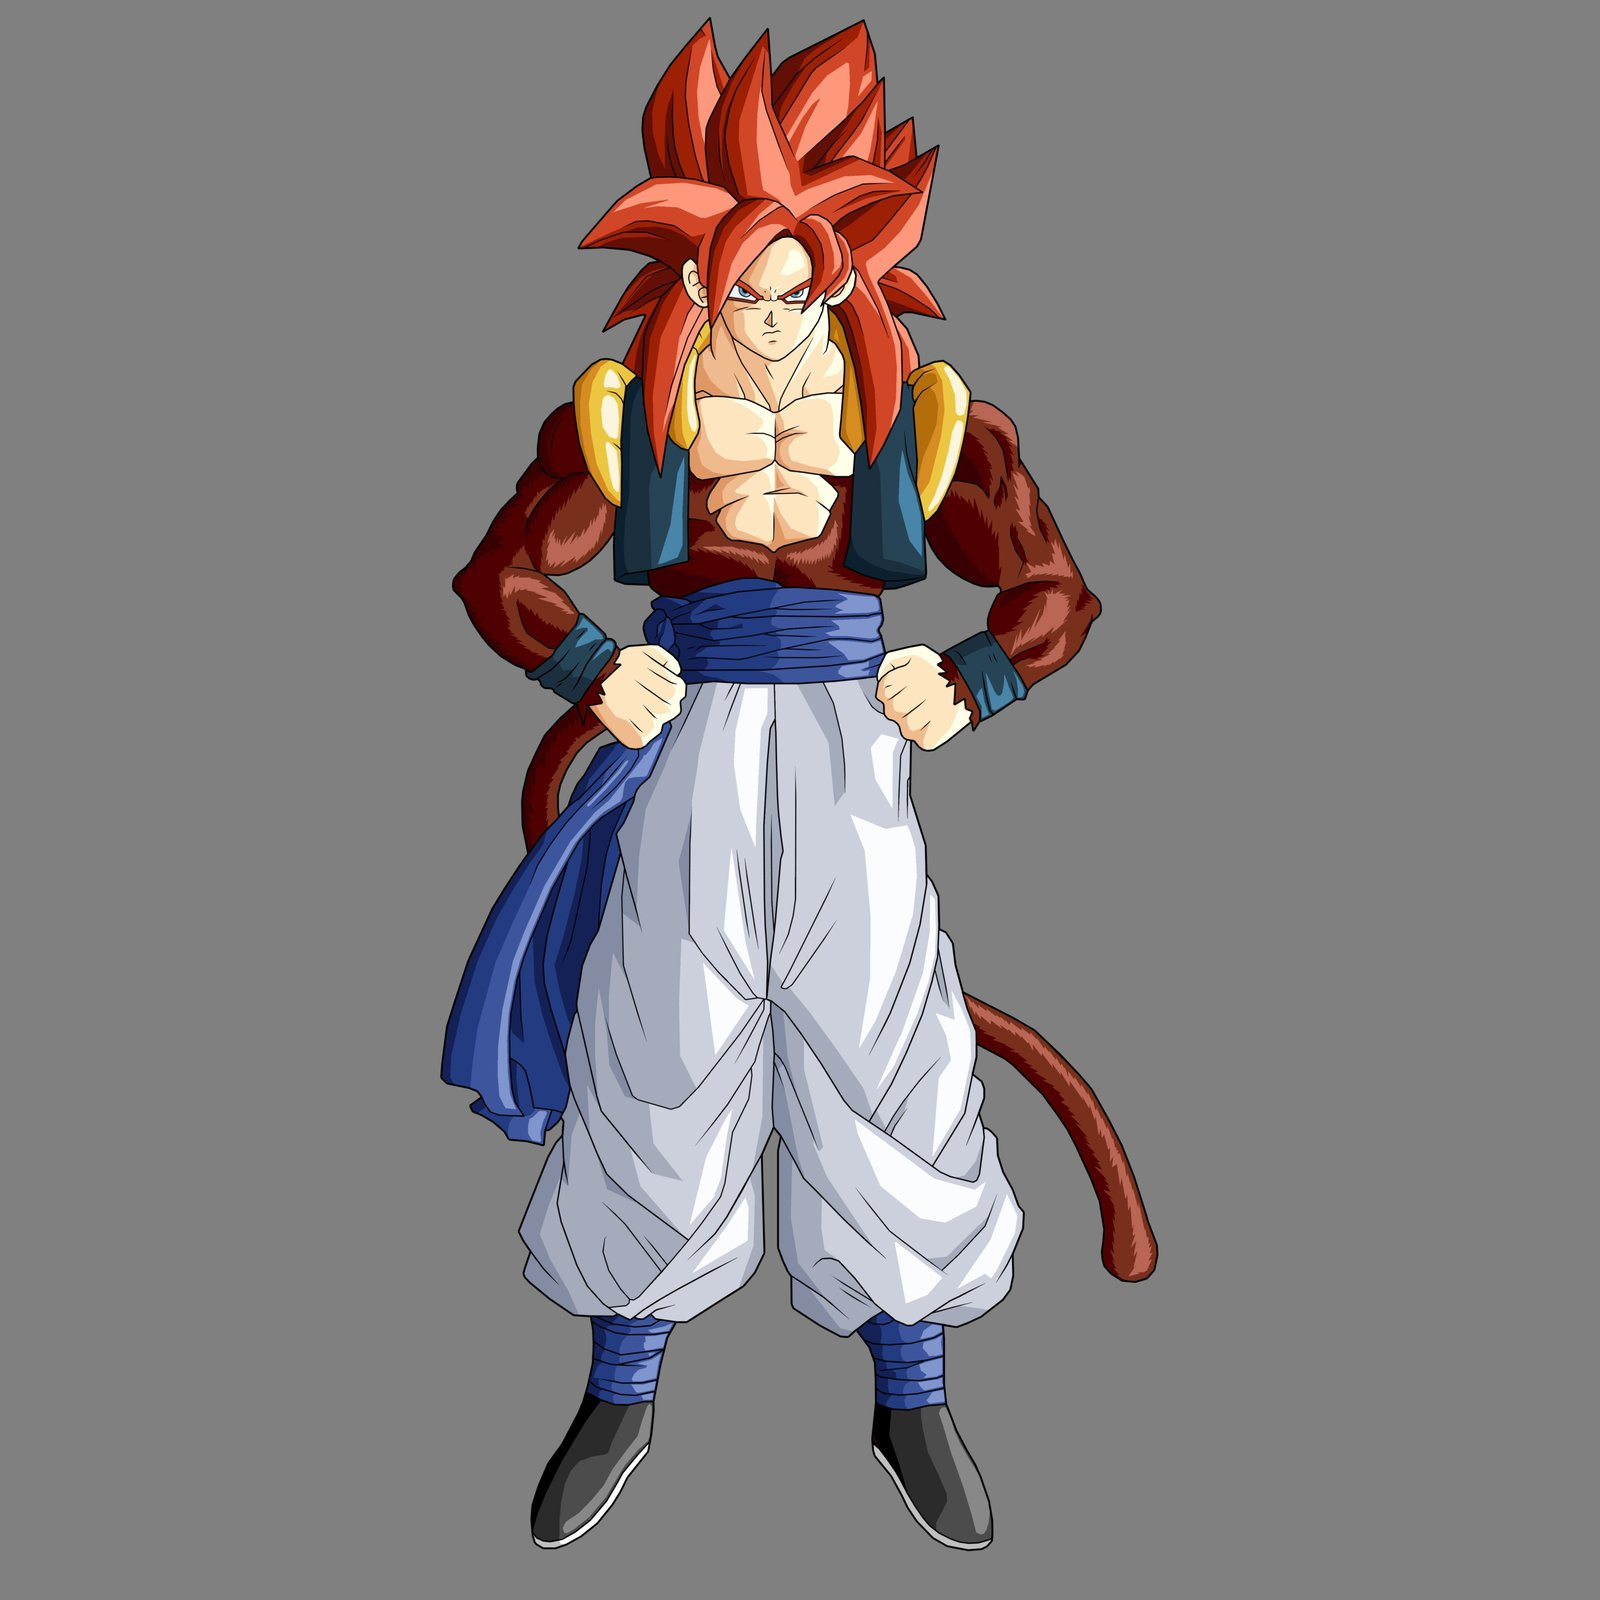 Dragon ball z super saiyan 5 gogeta